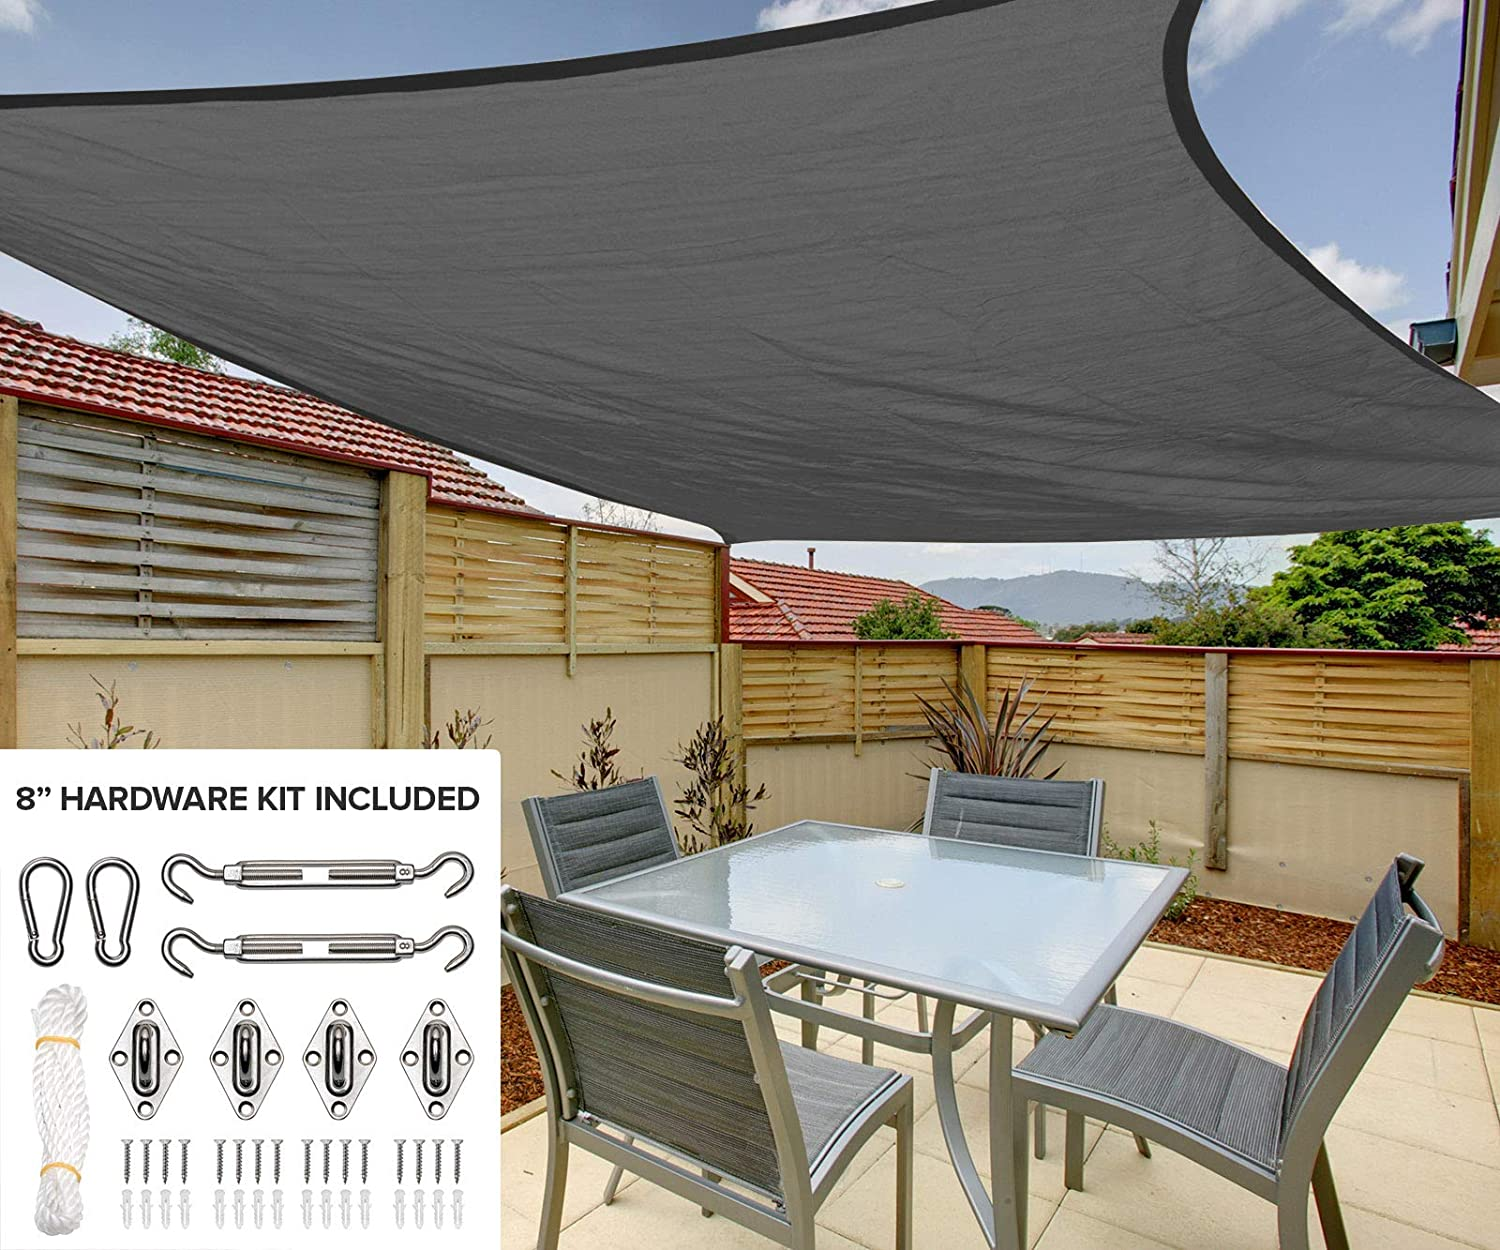 Durable Outdoor Patio Cover Pergola Awning 10x13 Rectangle Sun Shade Sail Canopy in Cobalt Blue 10x13 Rectangle, Cobalt Blue Heavy Duty 8 inch Stainless Steel Hardware Kit